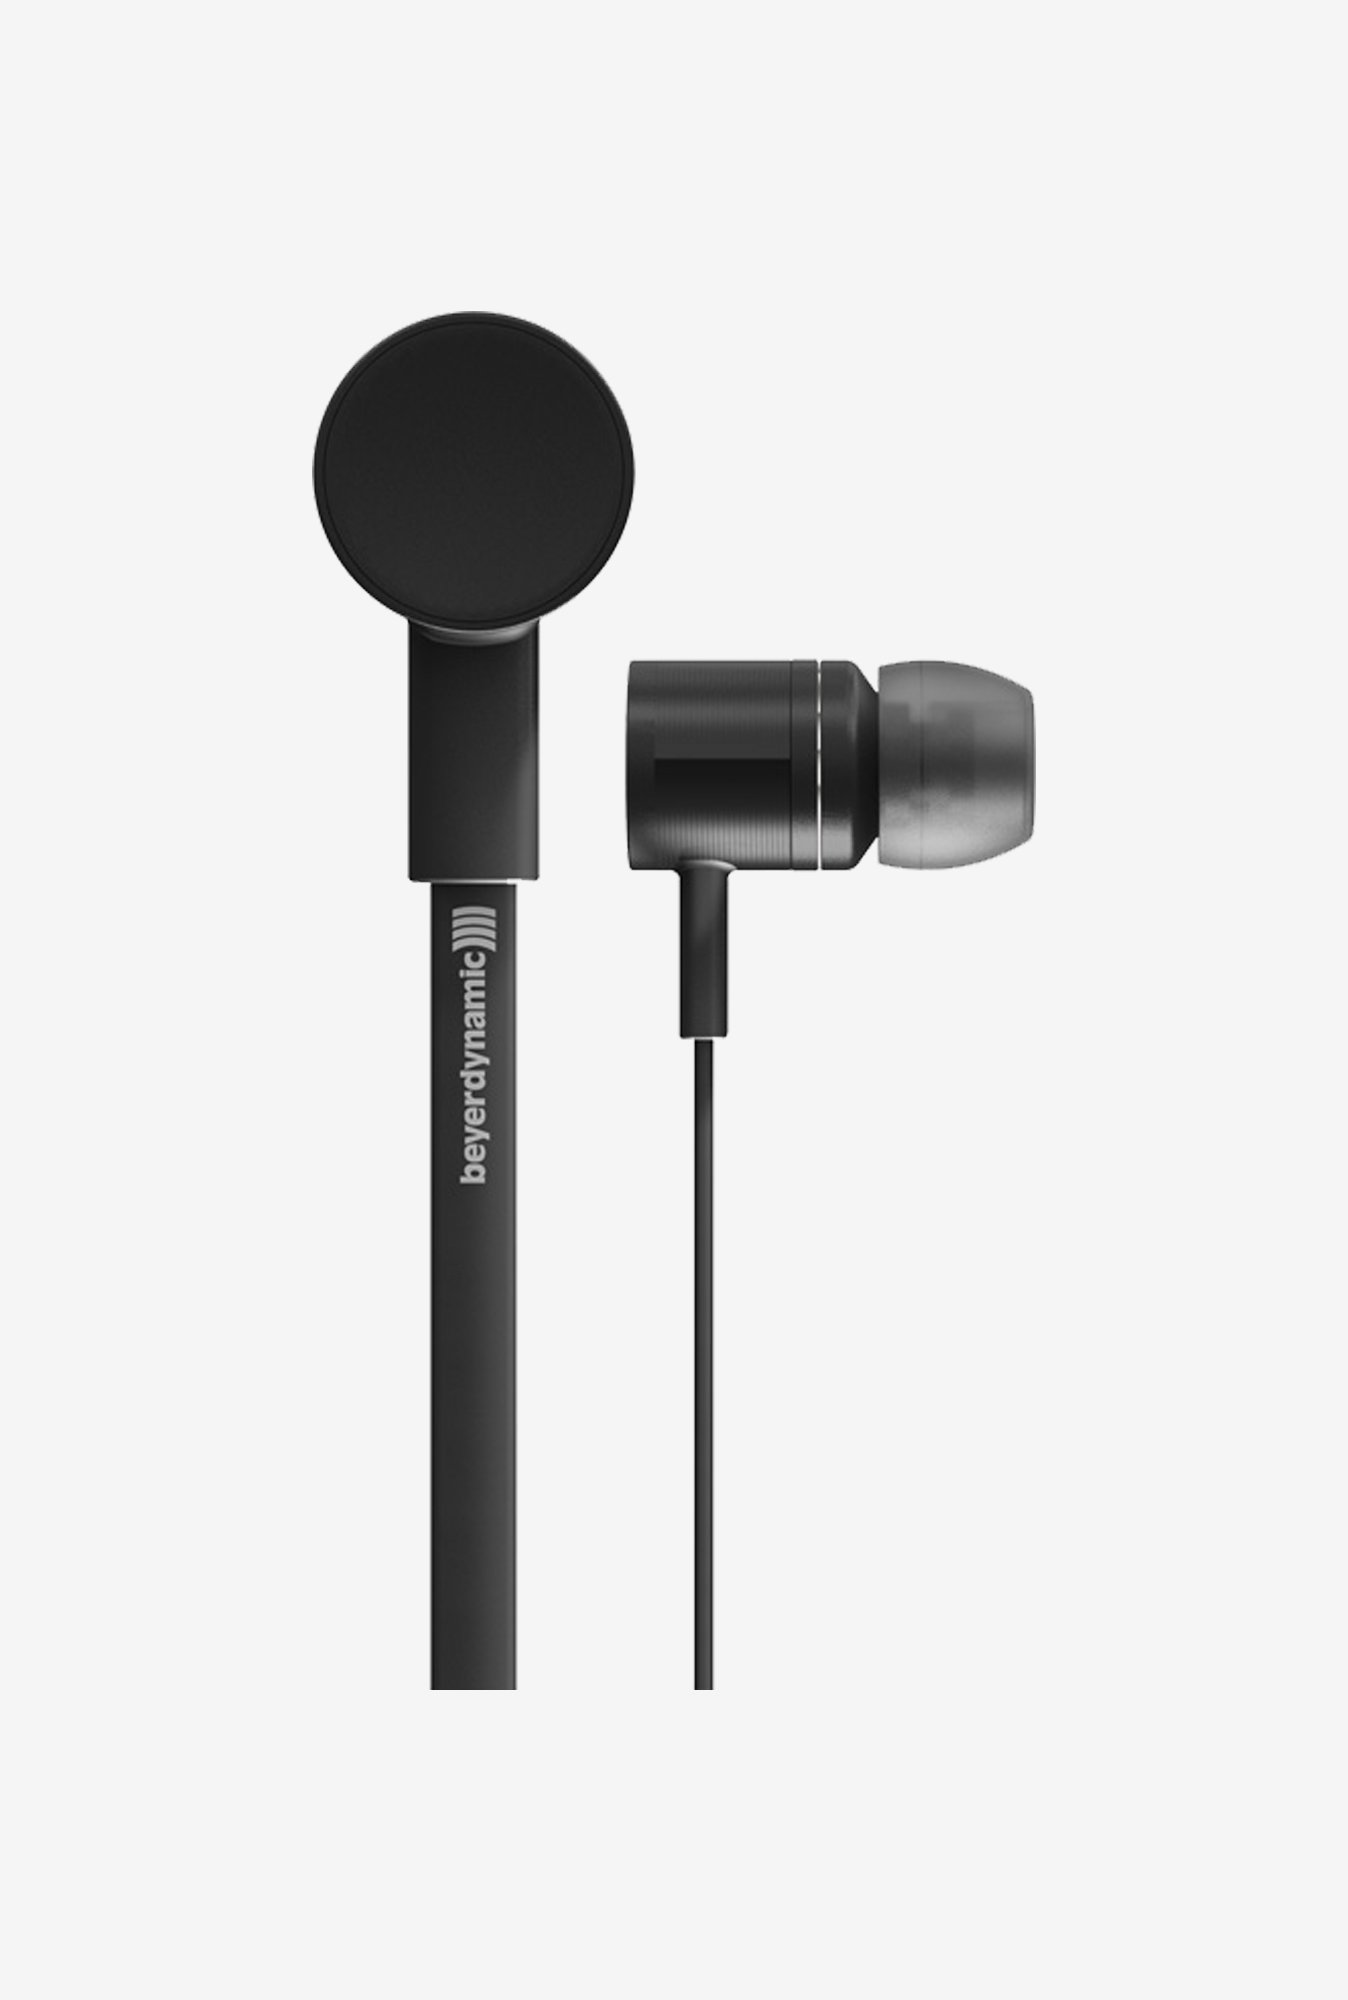 Beyerdynamic DX 120 iE In The Ear Headphones Black